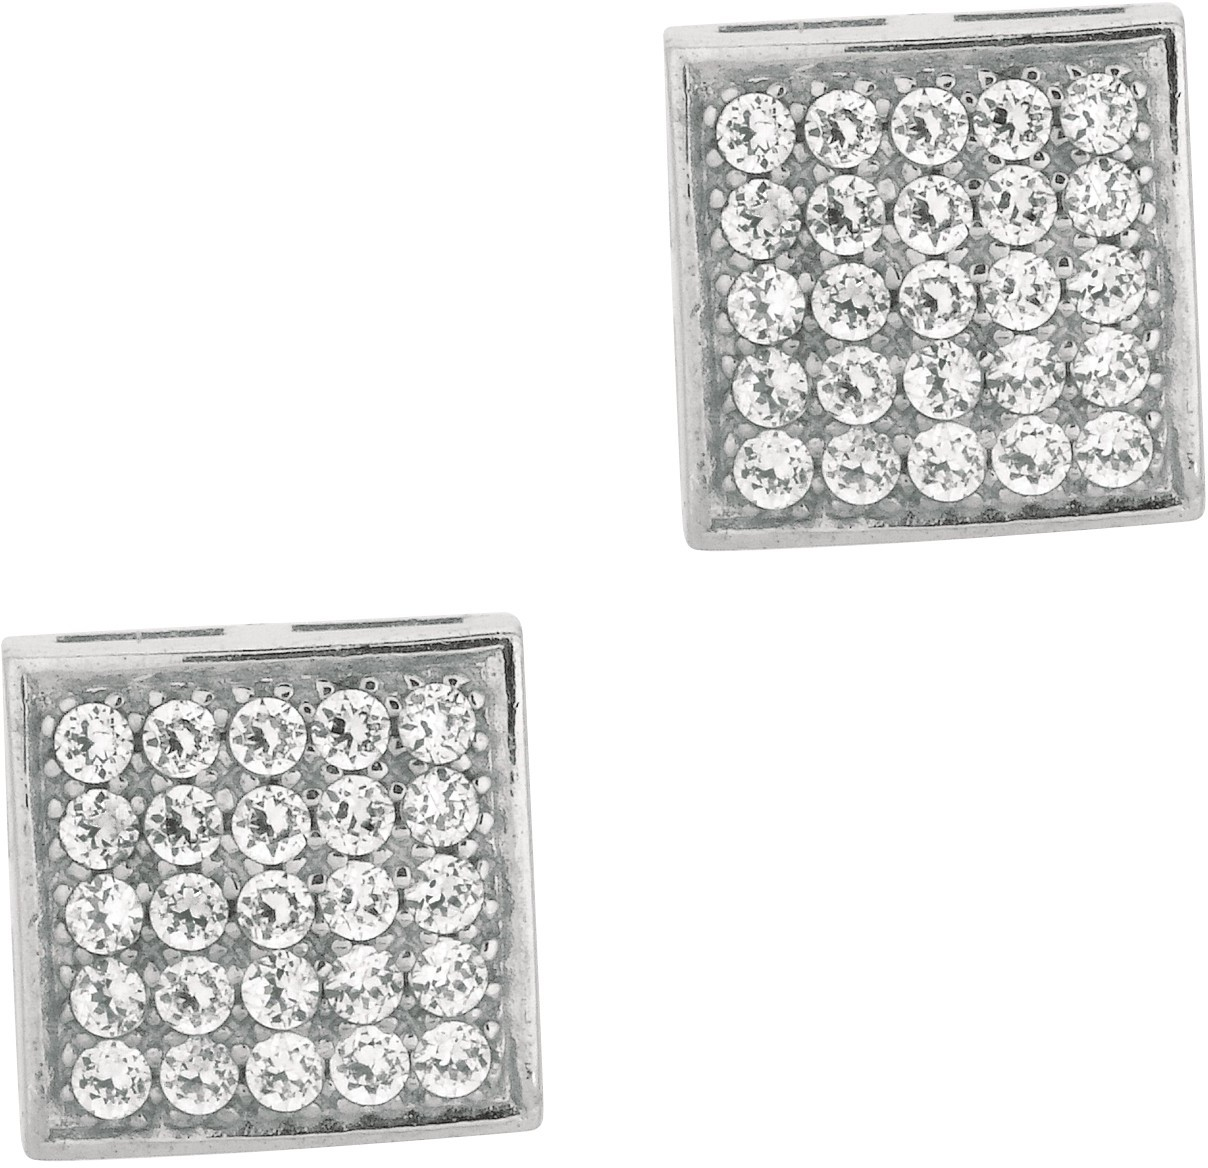 "Silver Rhodium Plated Shiny 11.0mm (7/16"") Square Clear Cubic Zirconia (CZ) Post Earrings"